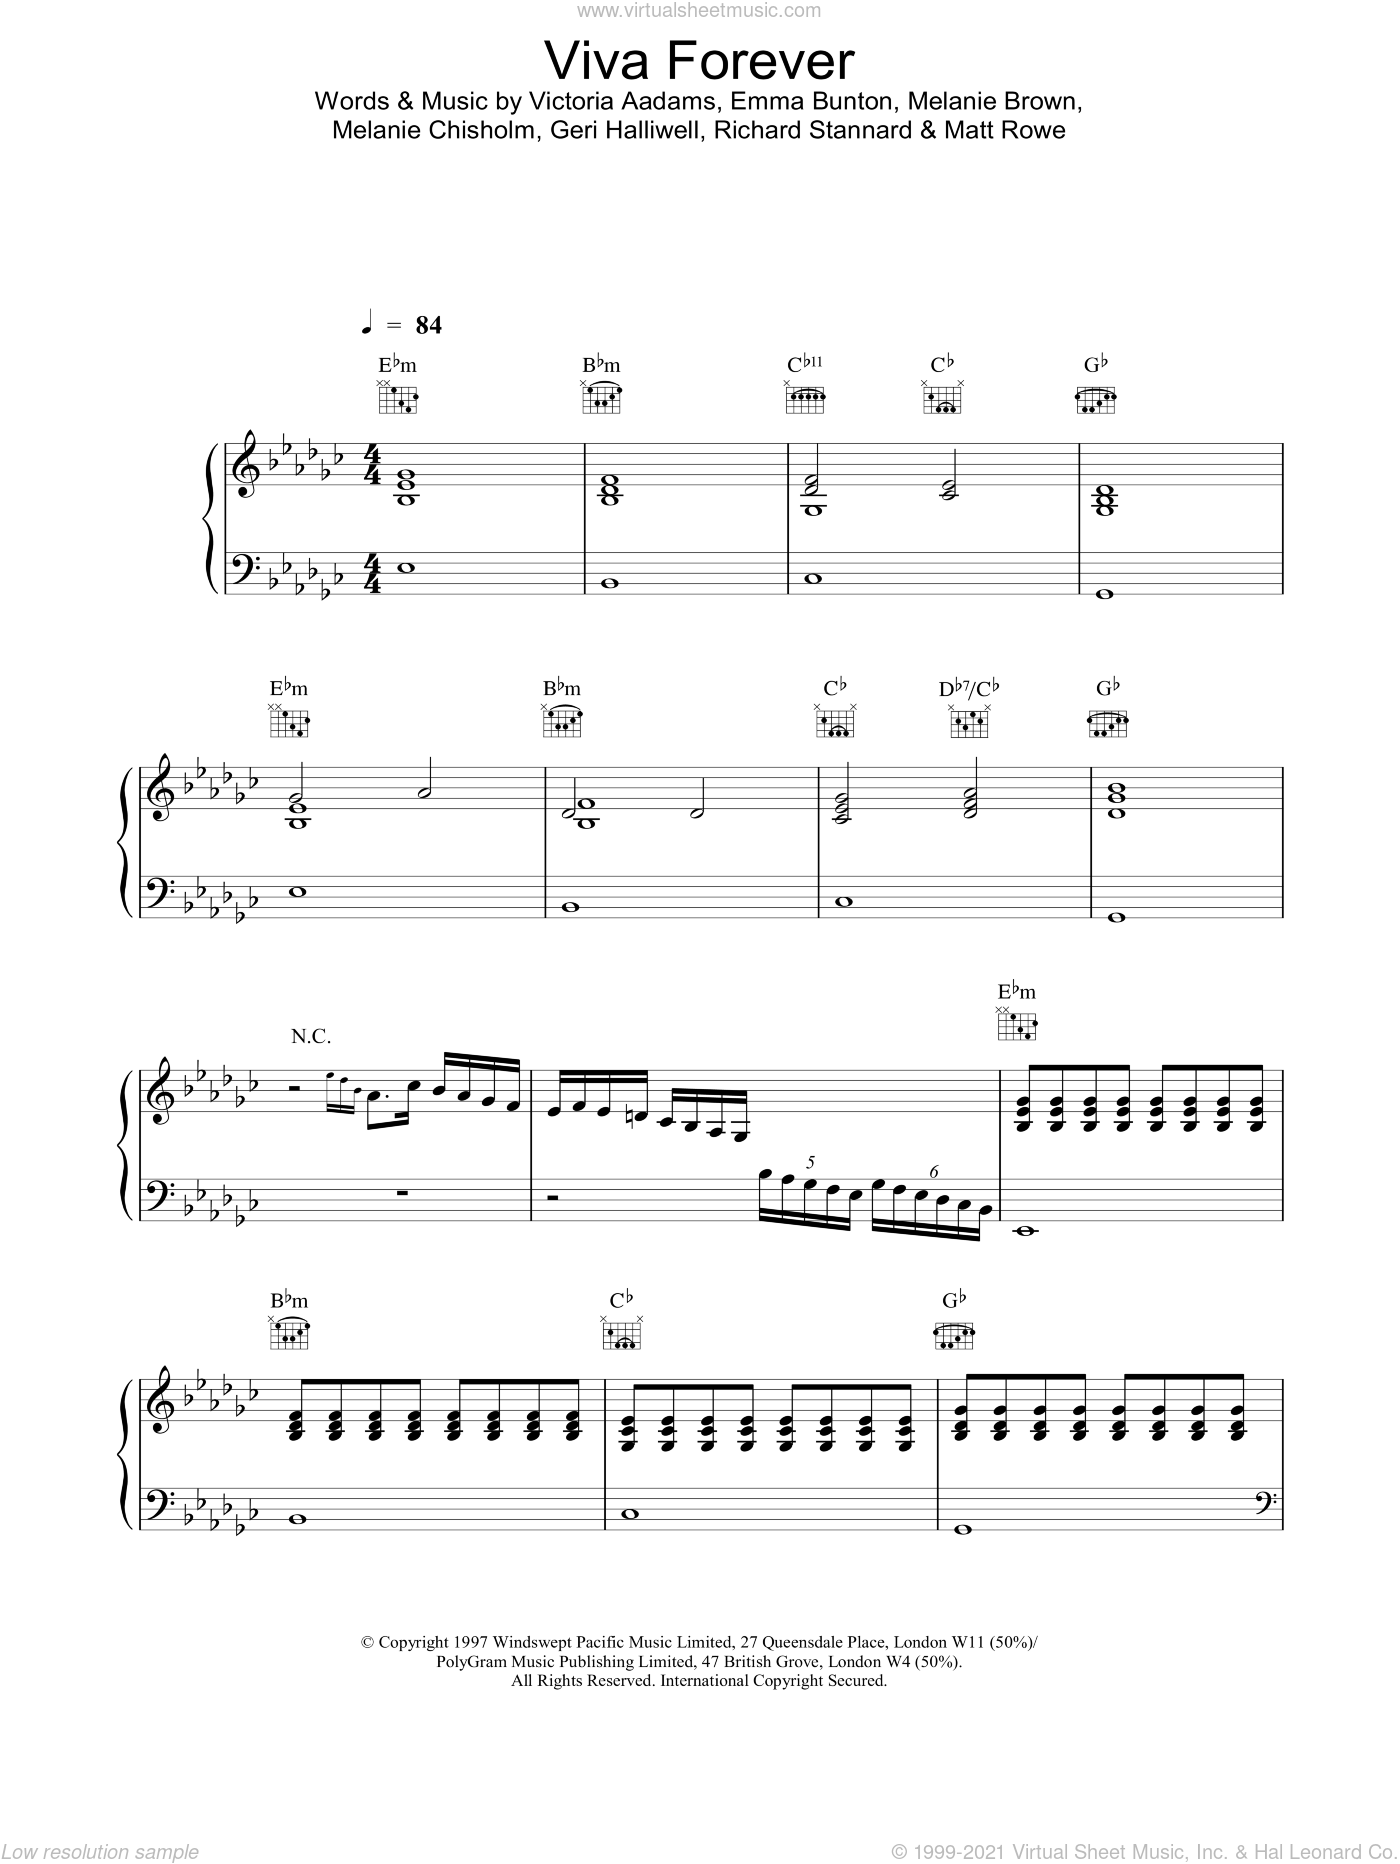 Viva Forever sheet music for voice, piano or guitar by The Spice Girls, intermediate skill level